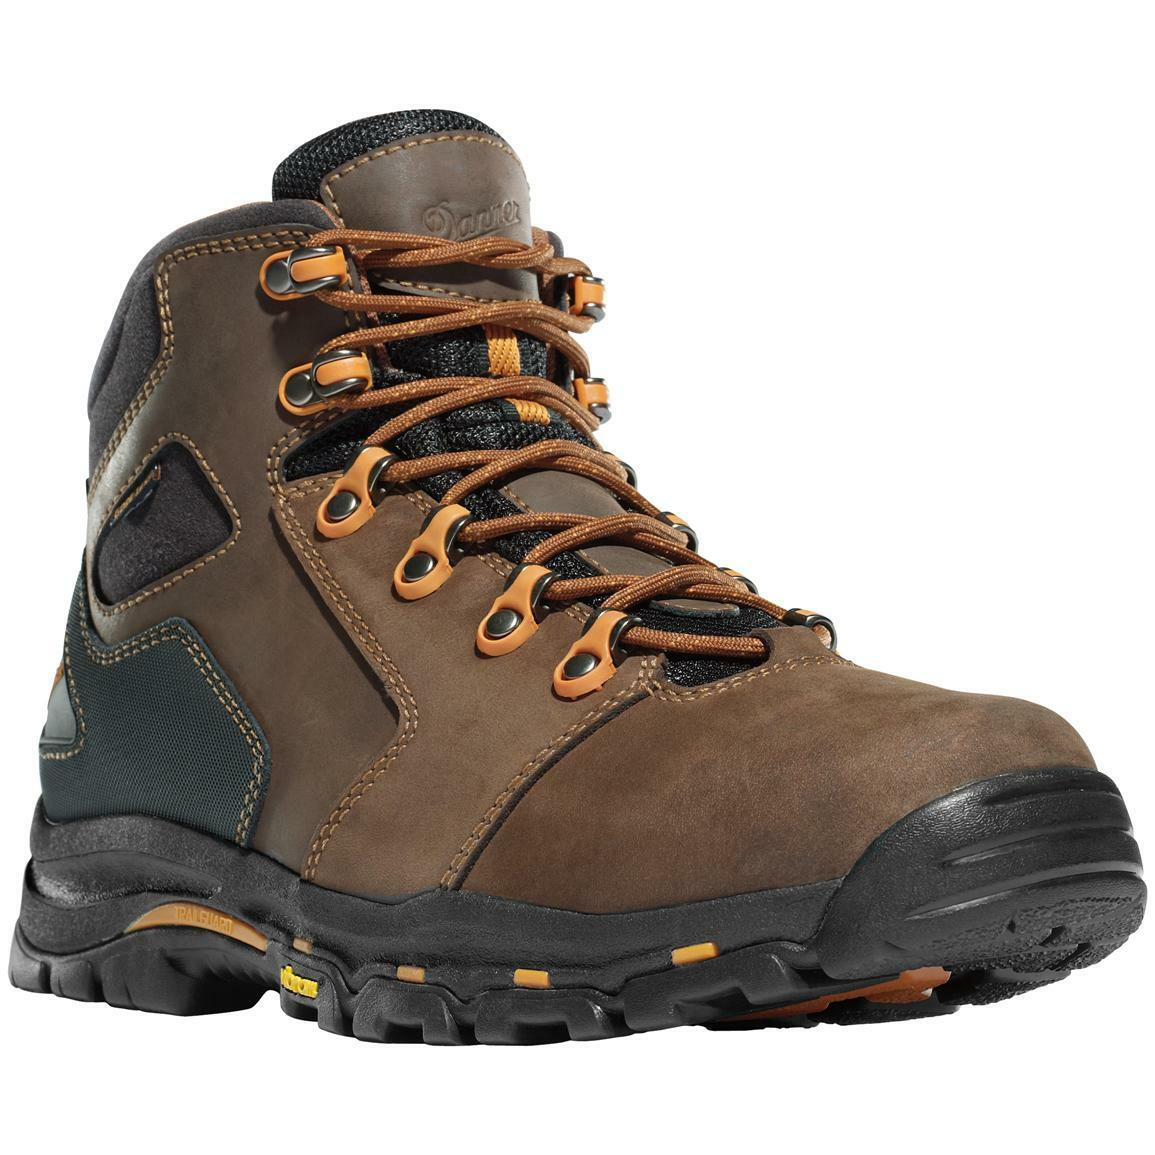 NEW Danner Vicious Work Hiking Boots, 4.5  Brown Leather, Gore-Tex Waterproof